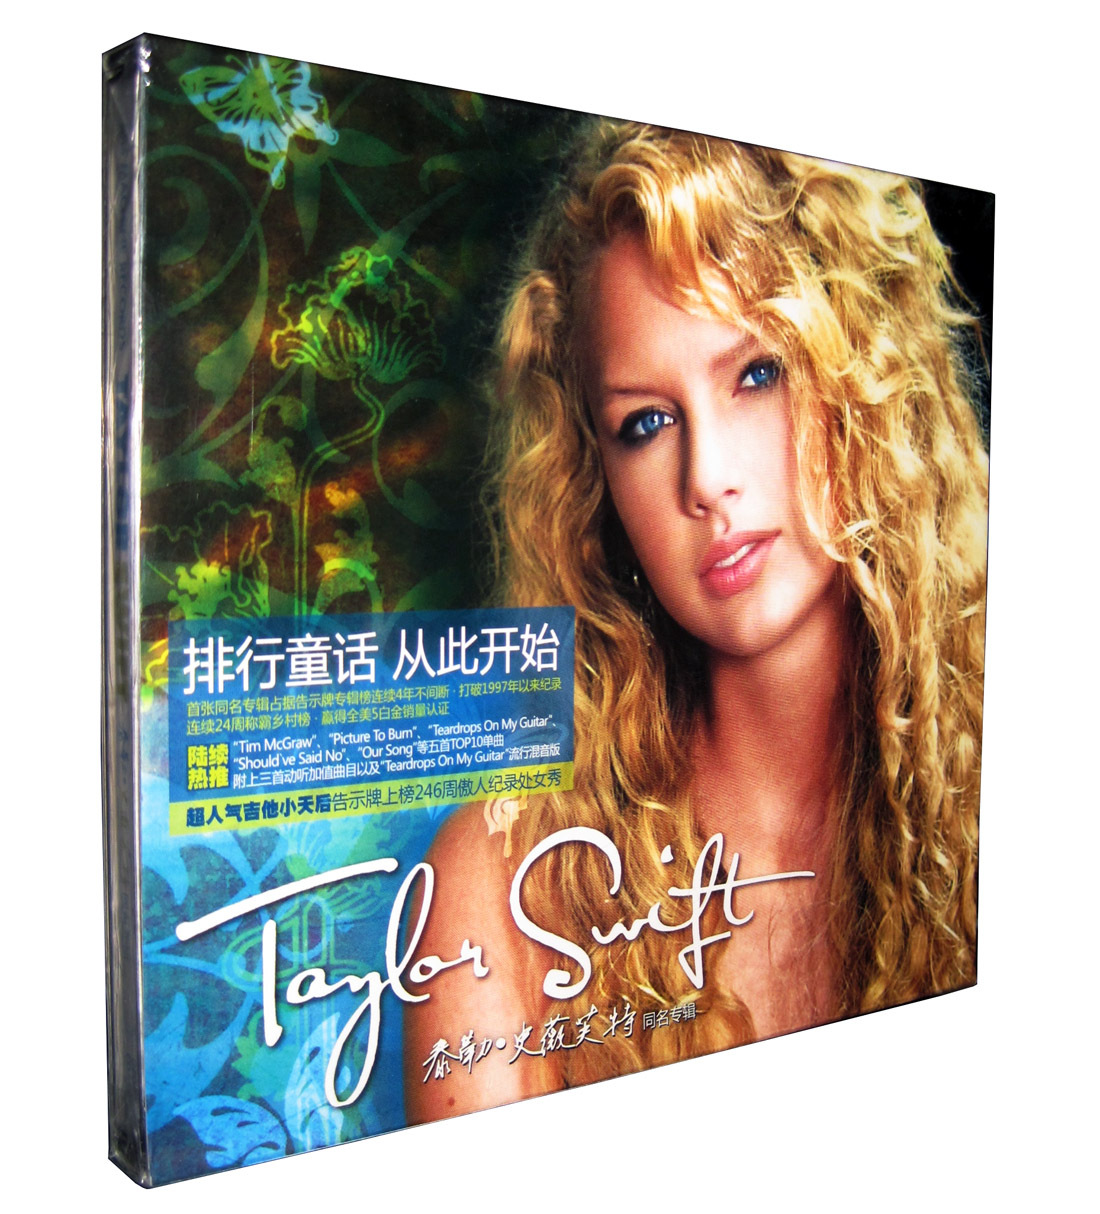 Музыка CD, DVD   Taylor Swift (CD) музыка cd dvd cd dvd tw